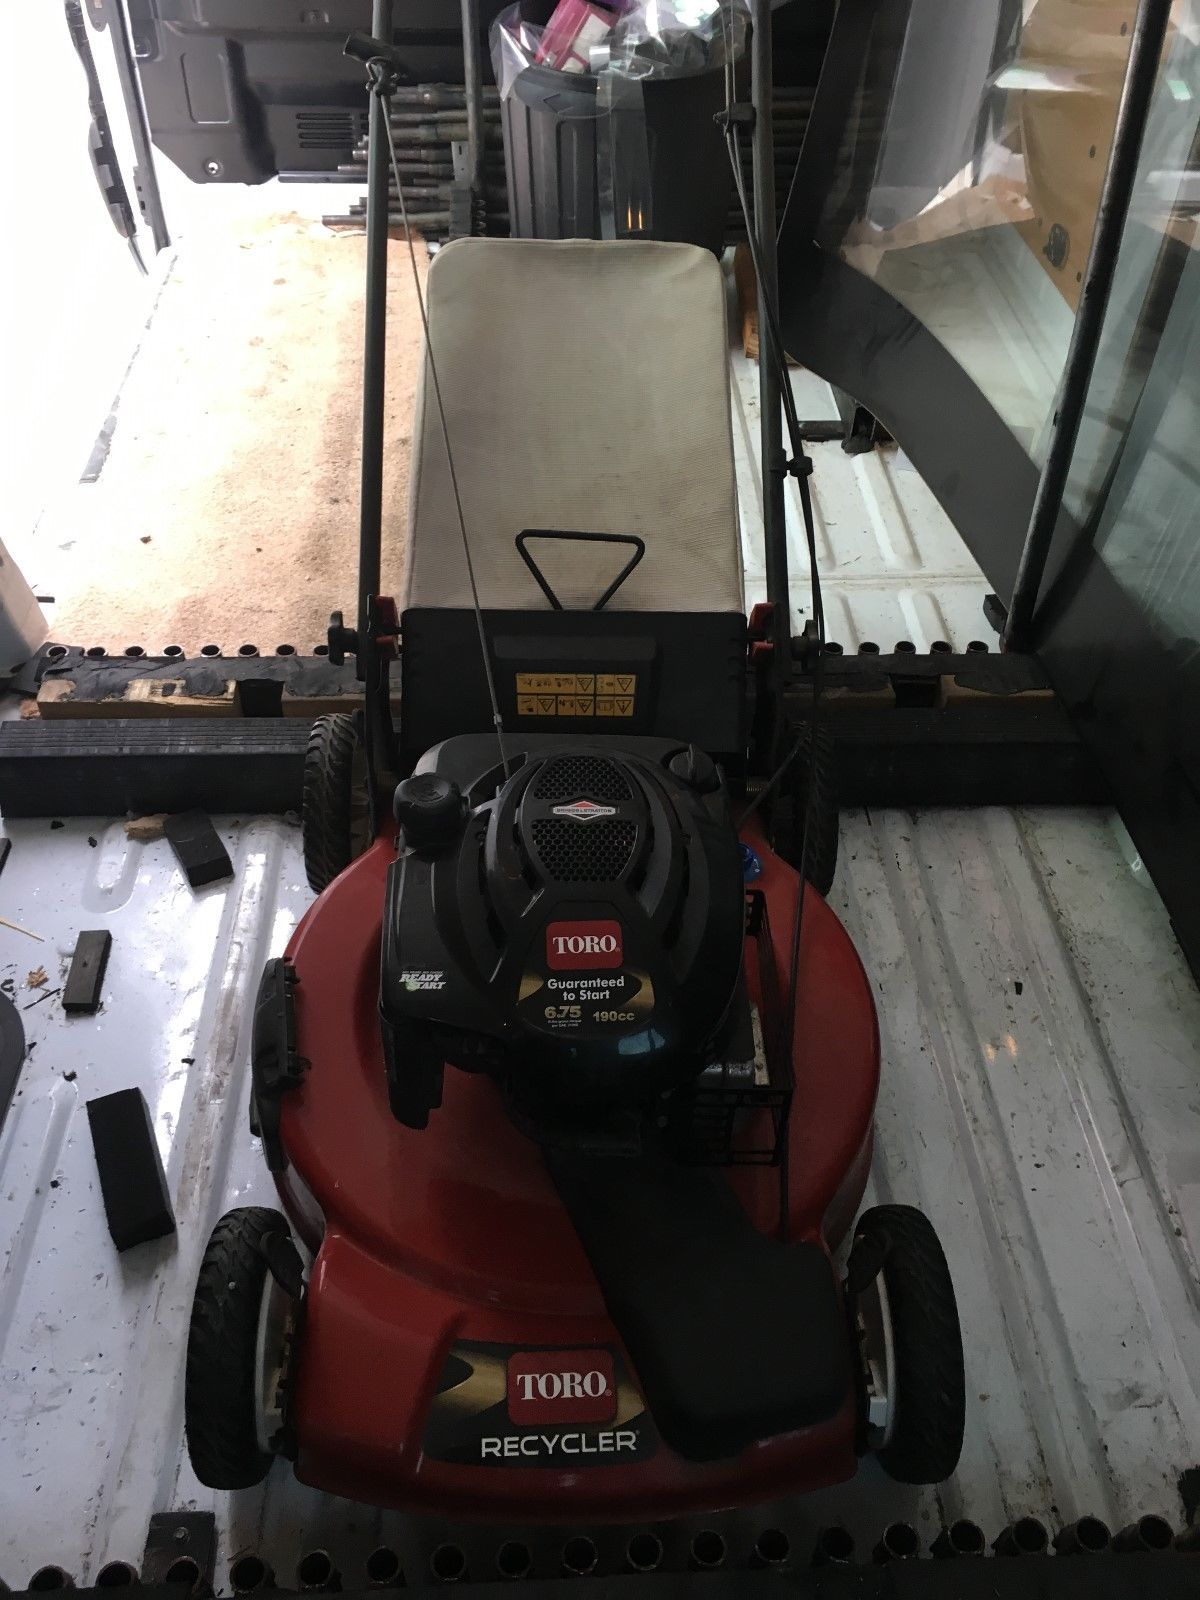 Self propelled 4 stroke lawn mower for sale